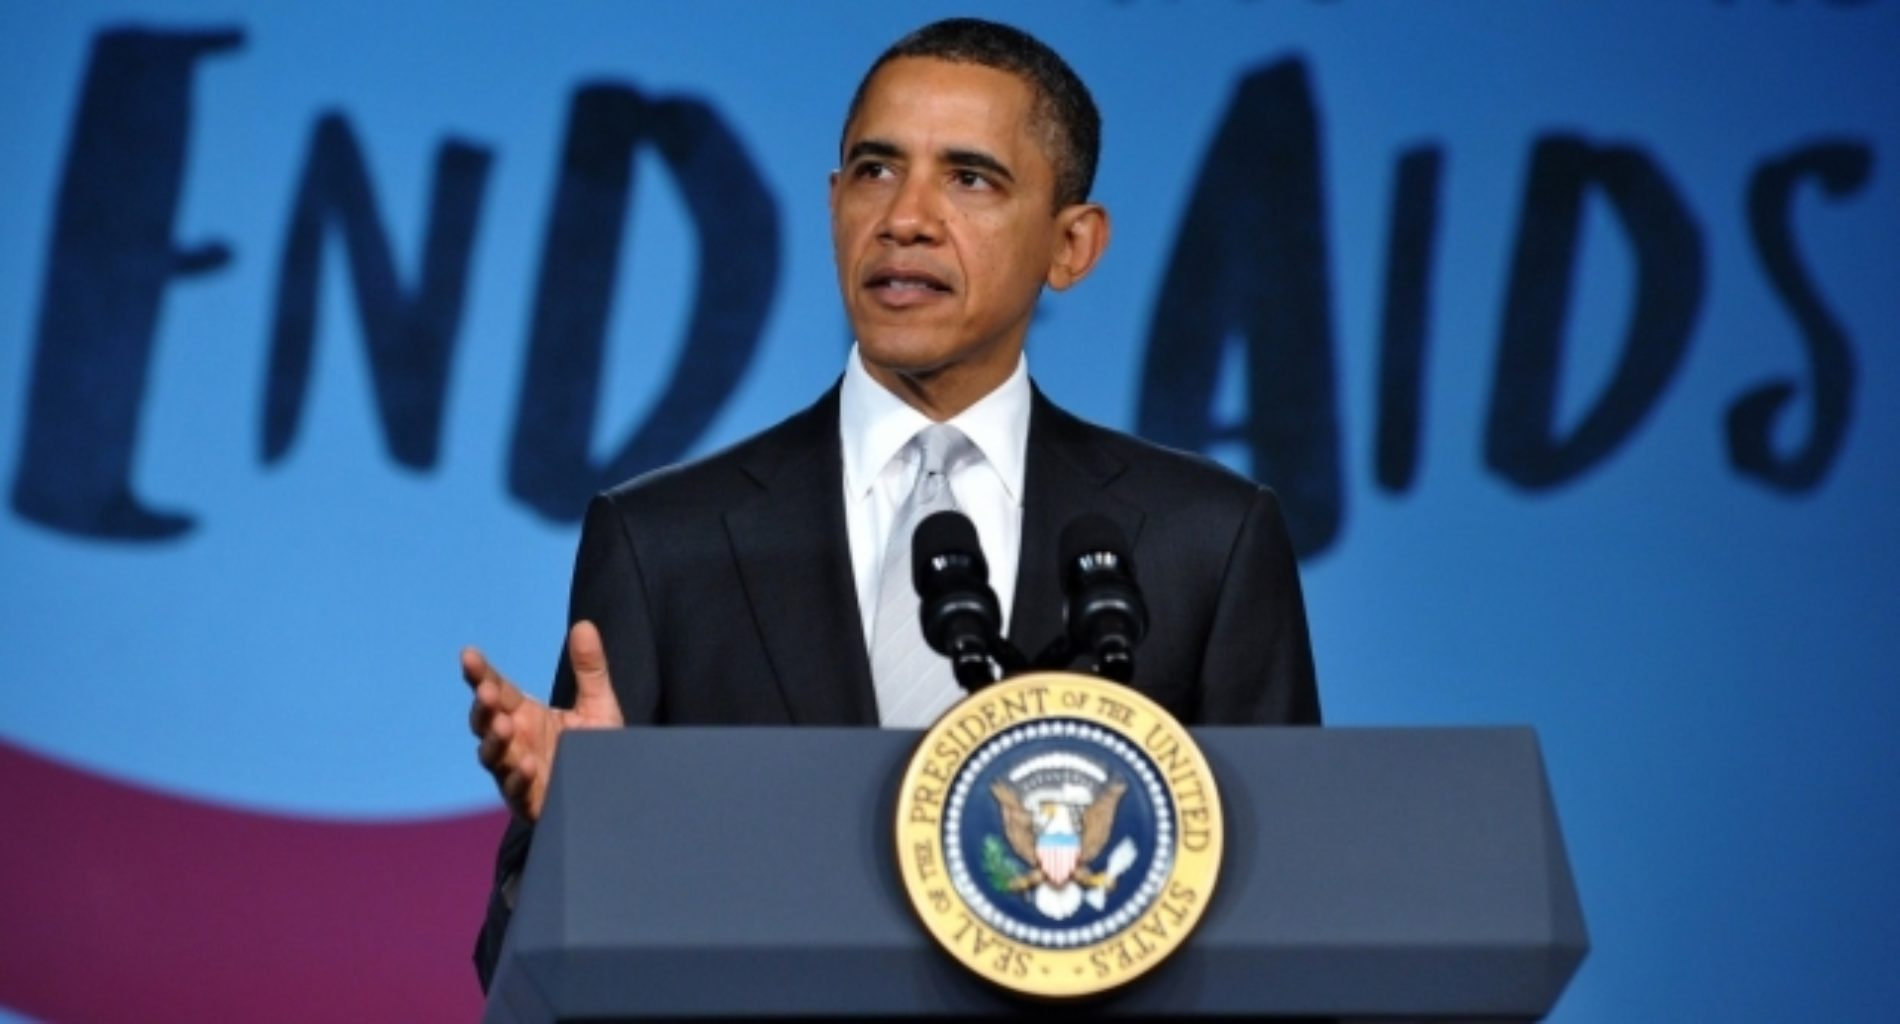 Barack Obama: We must rededicate our efforts to achieving our goal of an AIDS-free generation.